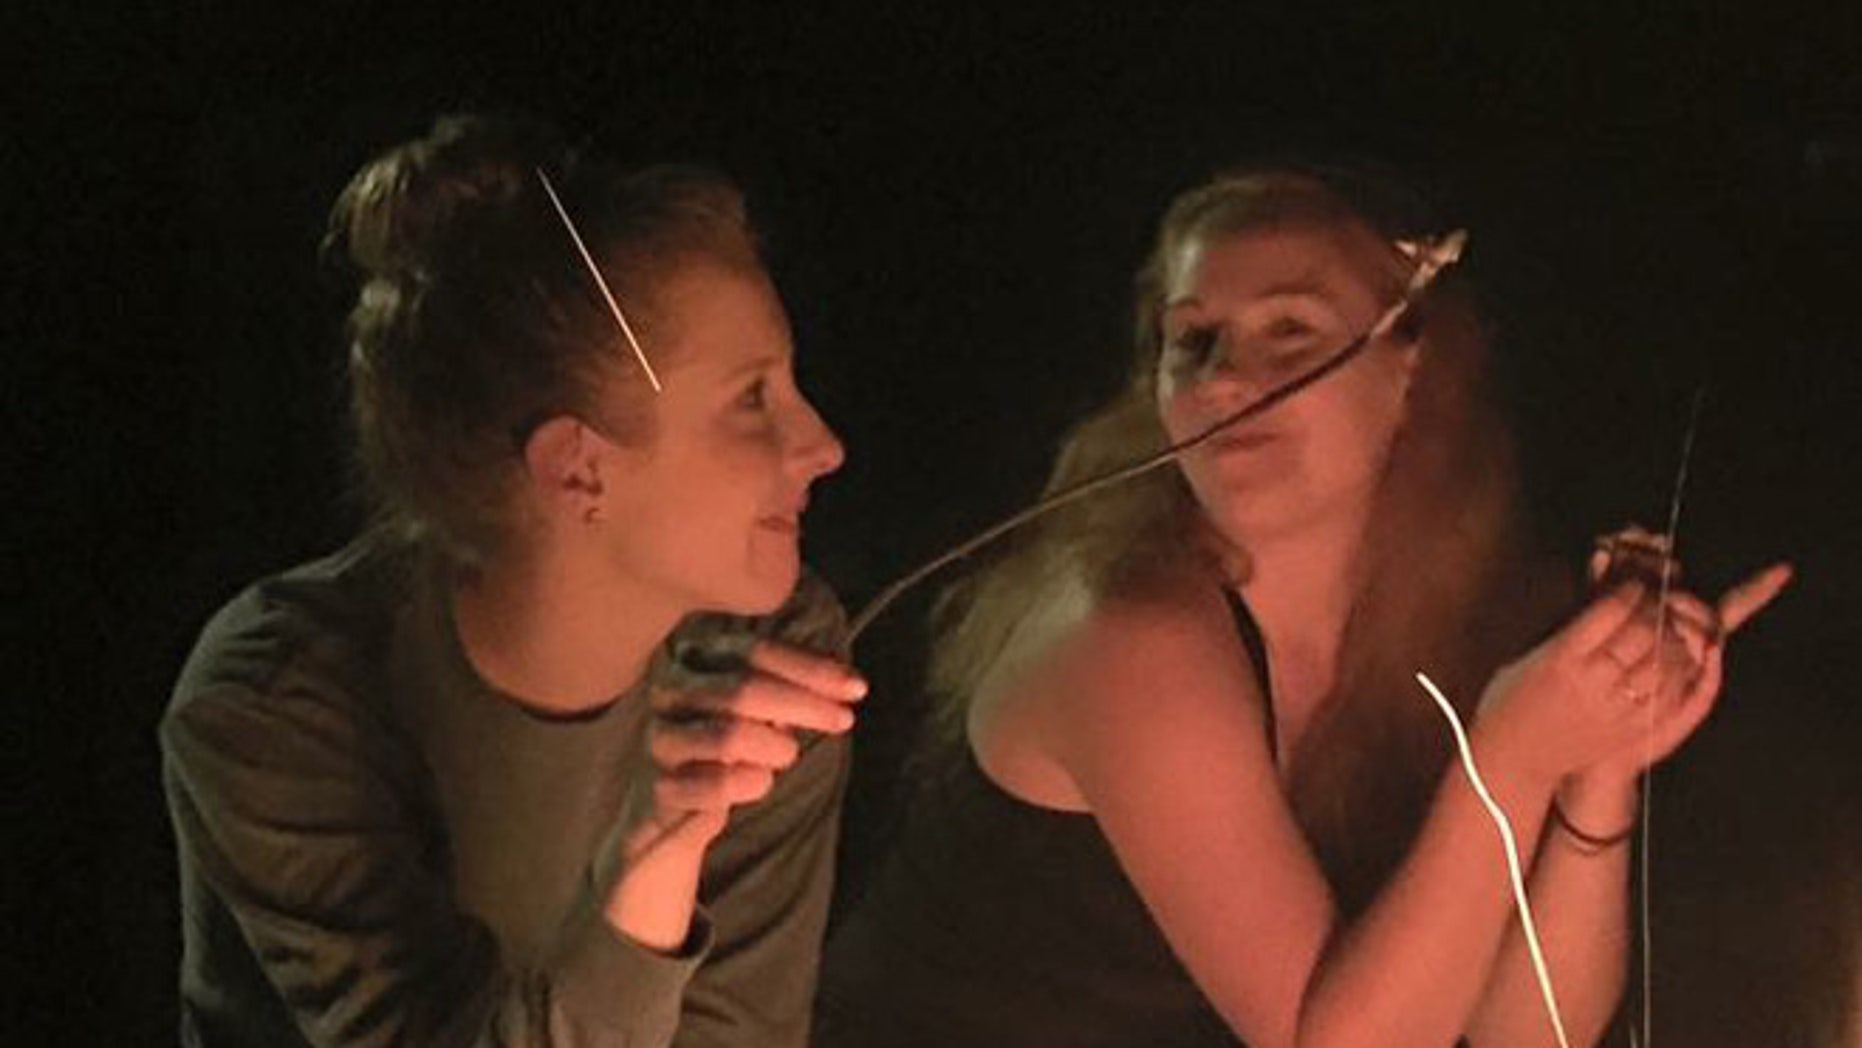 Friends Alison Parker (left) and Katy Summerlin on vacation near Ashville, N.C., in late-August 2015, days before Parker was murdered.